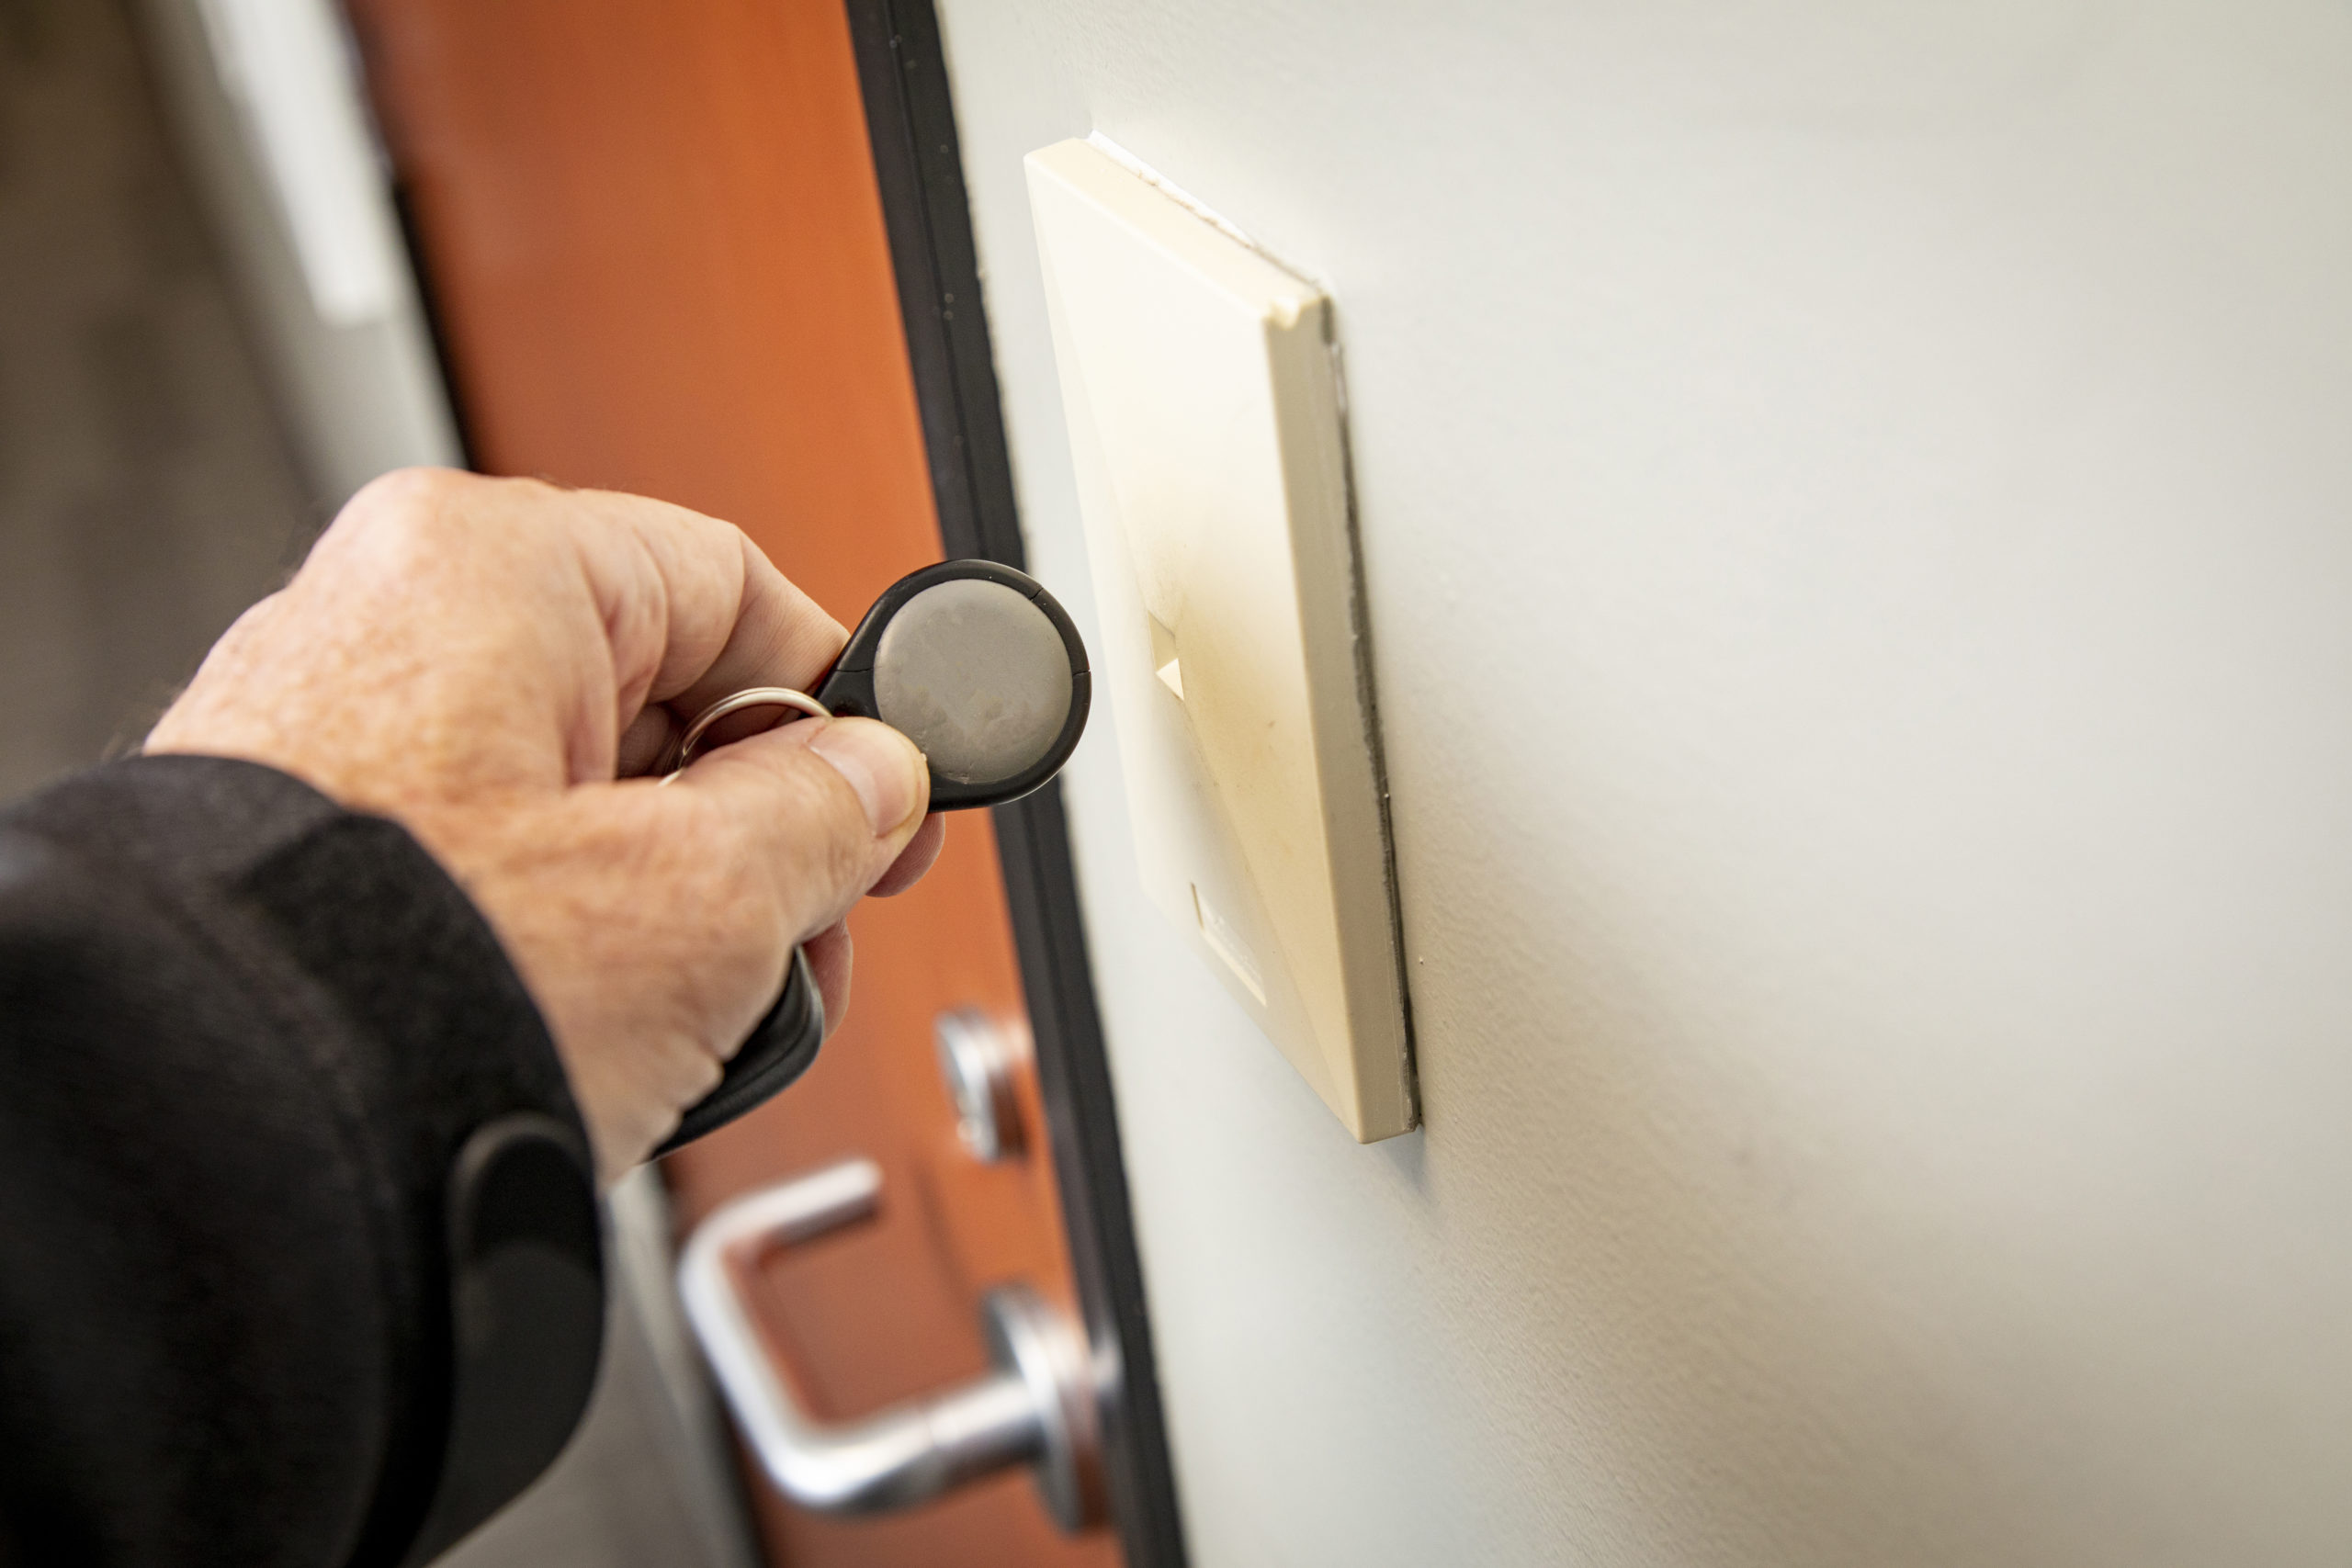 Security key fob in use, opening a door.